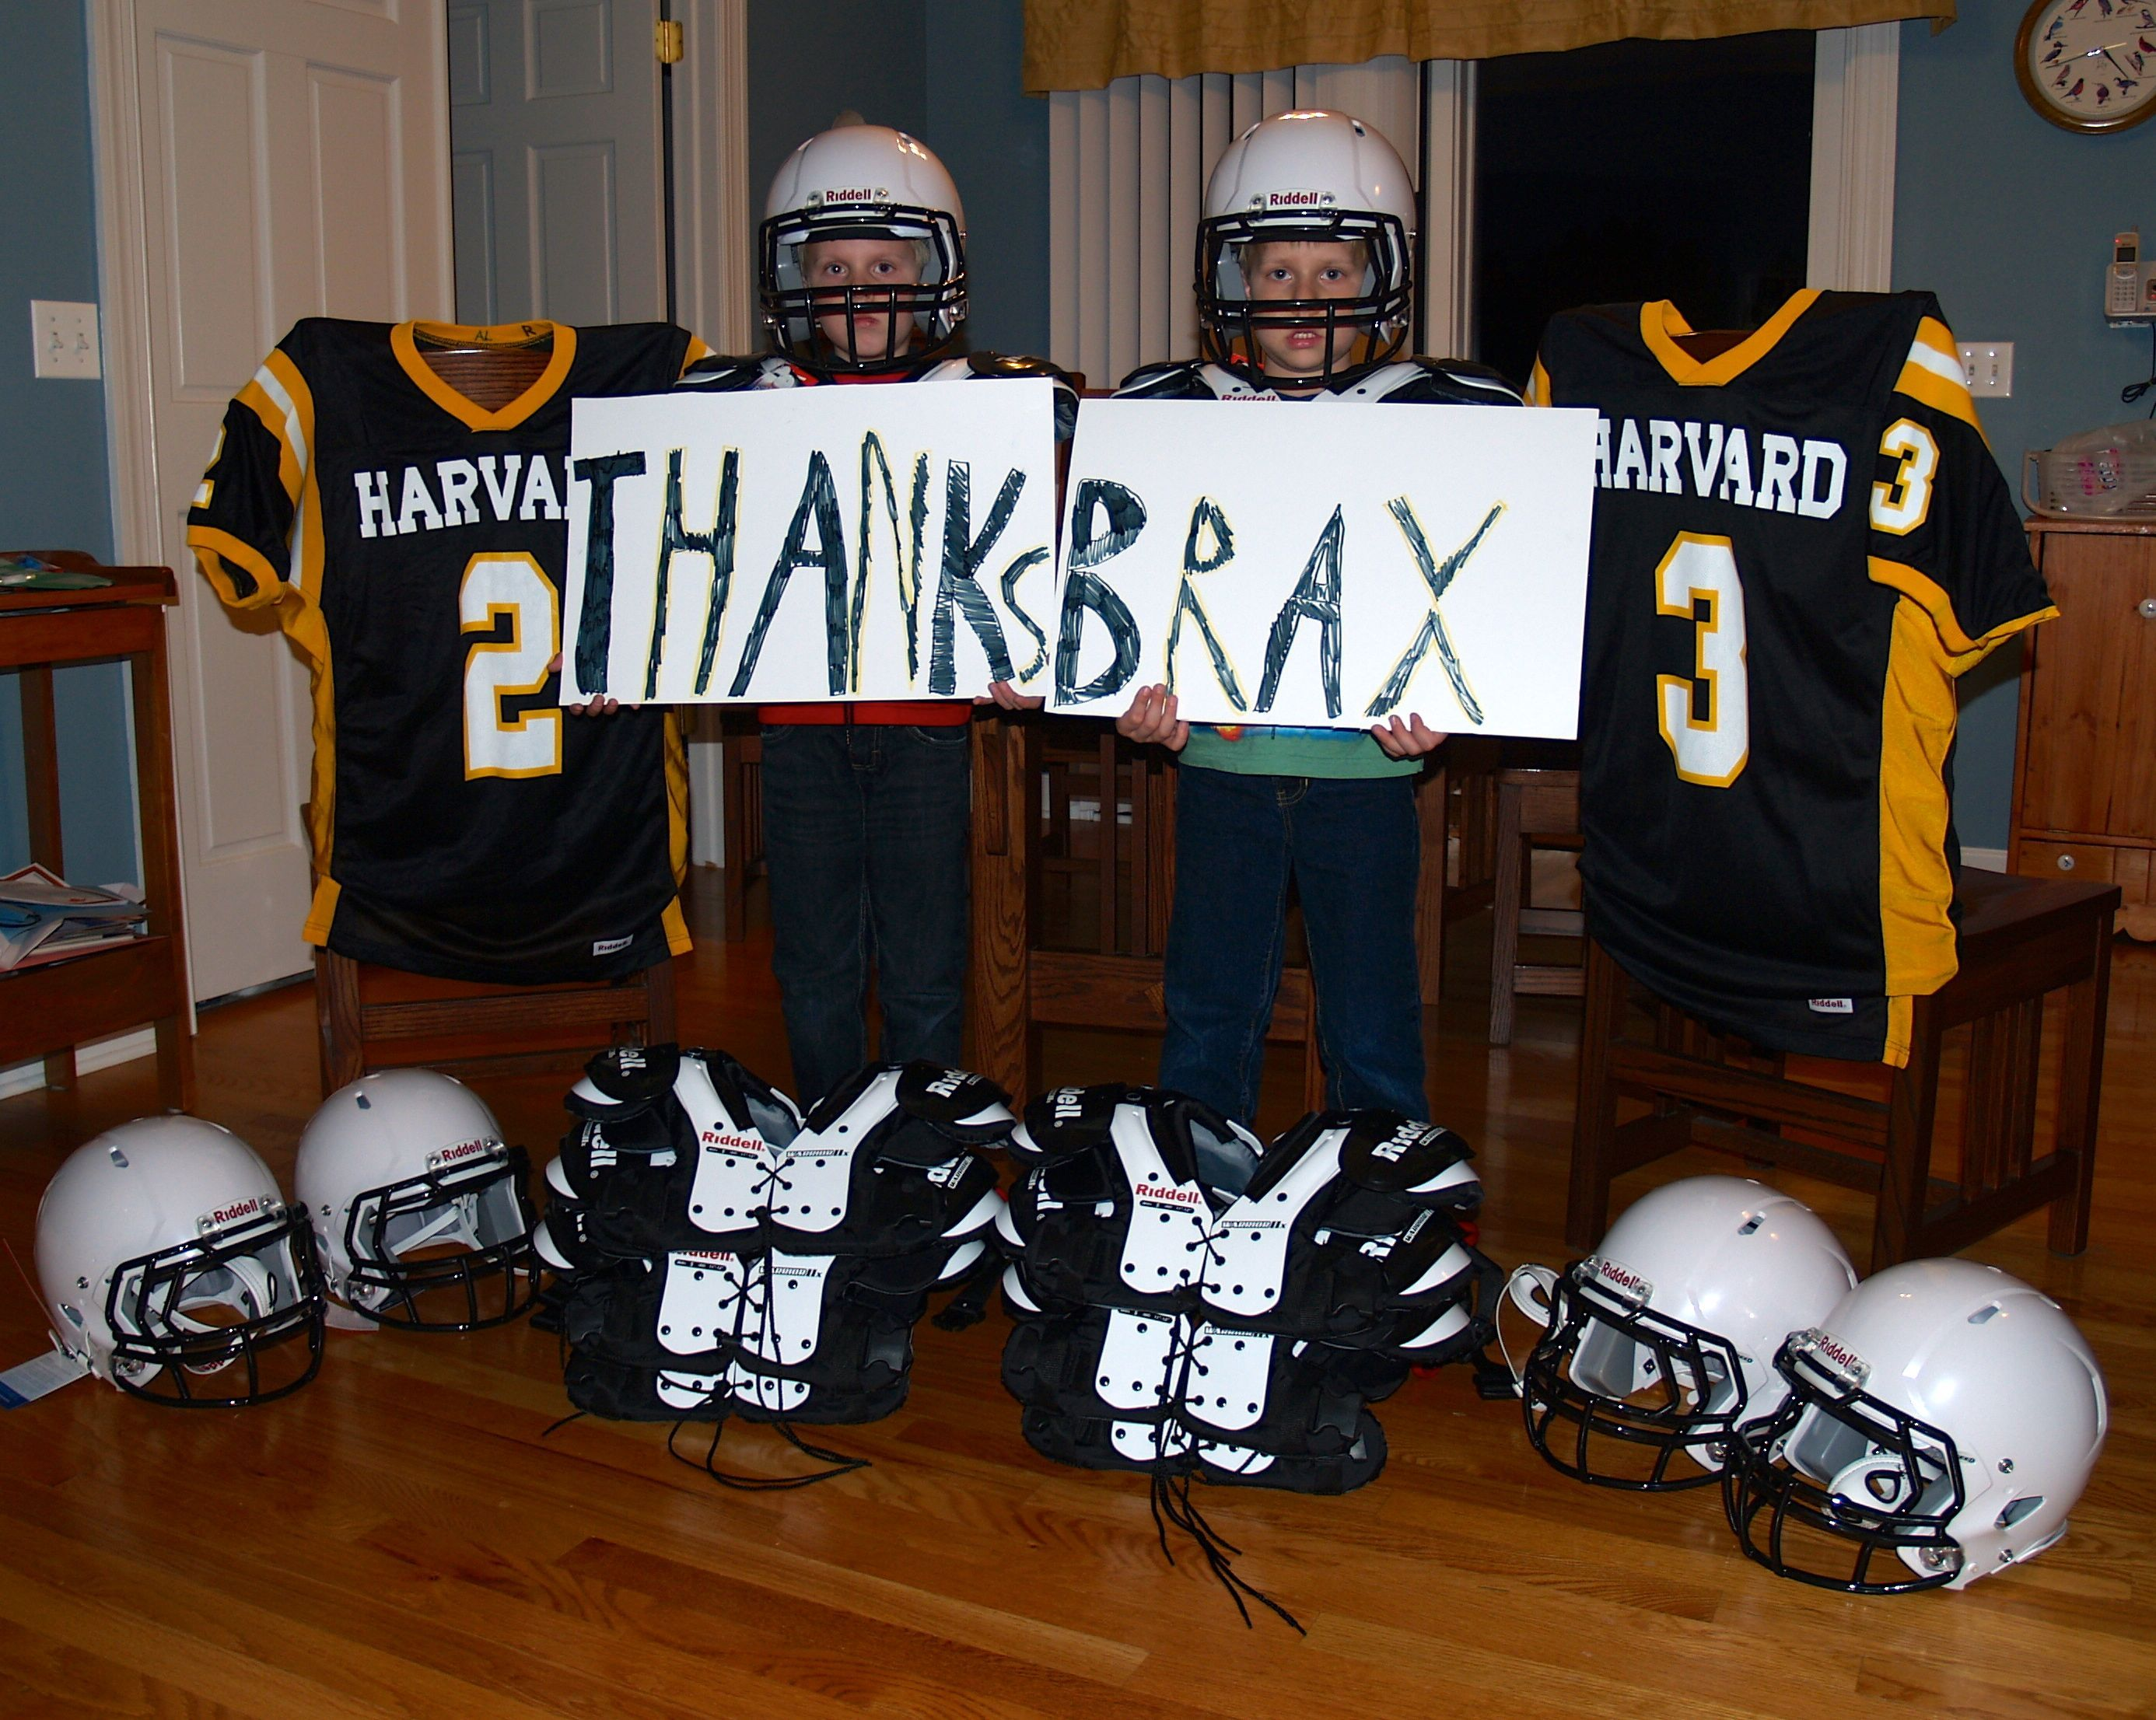 Harvard Stingers Football Team Winner Of 5 000 In Riddell Equipment From Brax And Partner Usa Footb Sports Fundraisers Successful Fundraisers Football Team